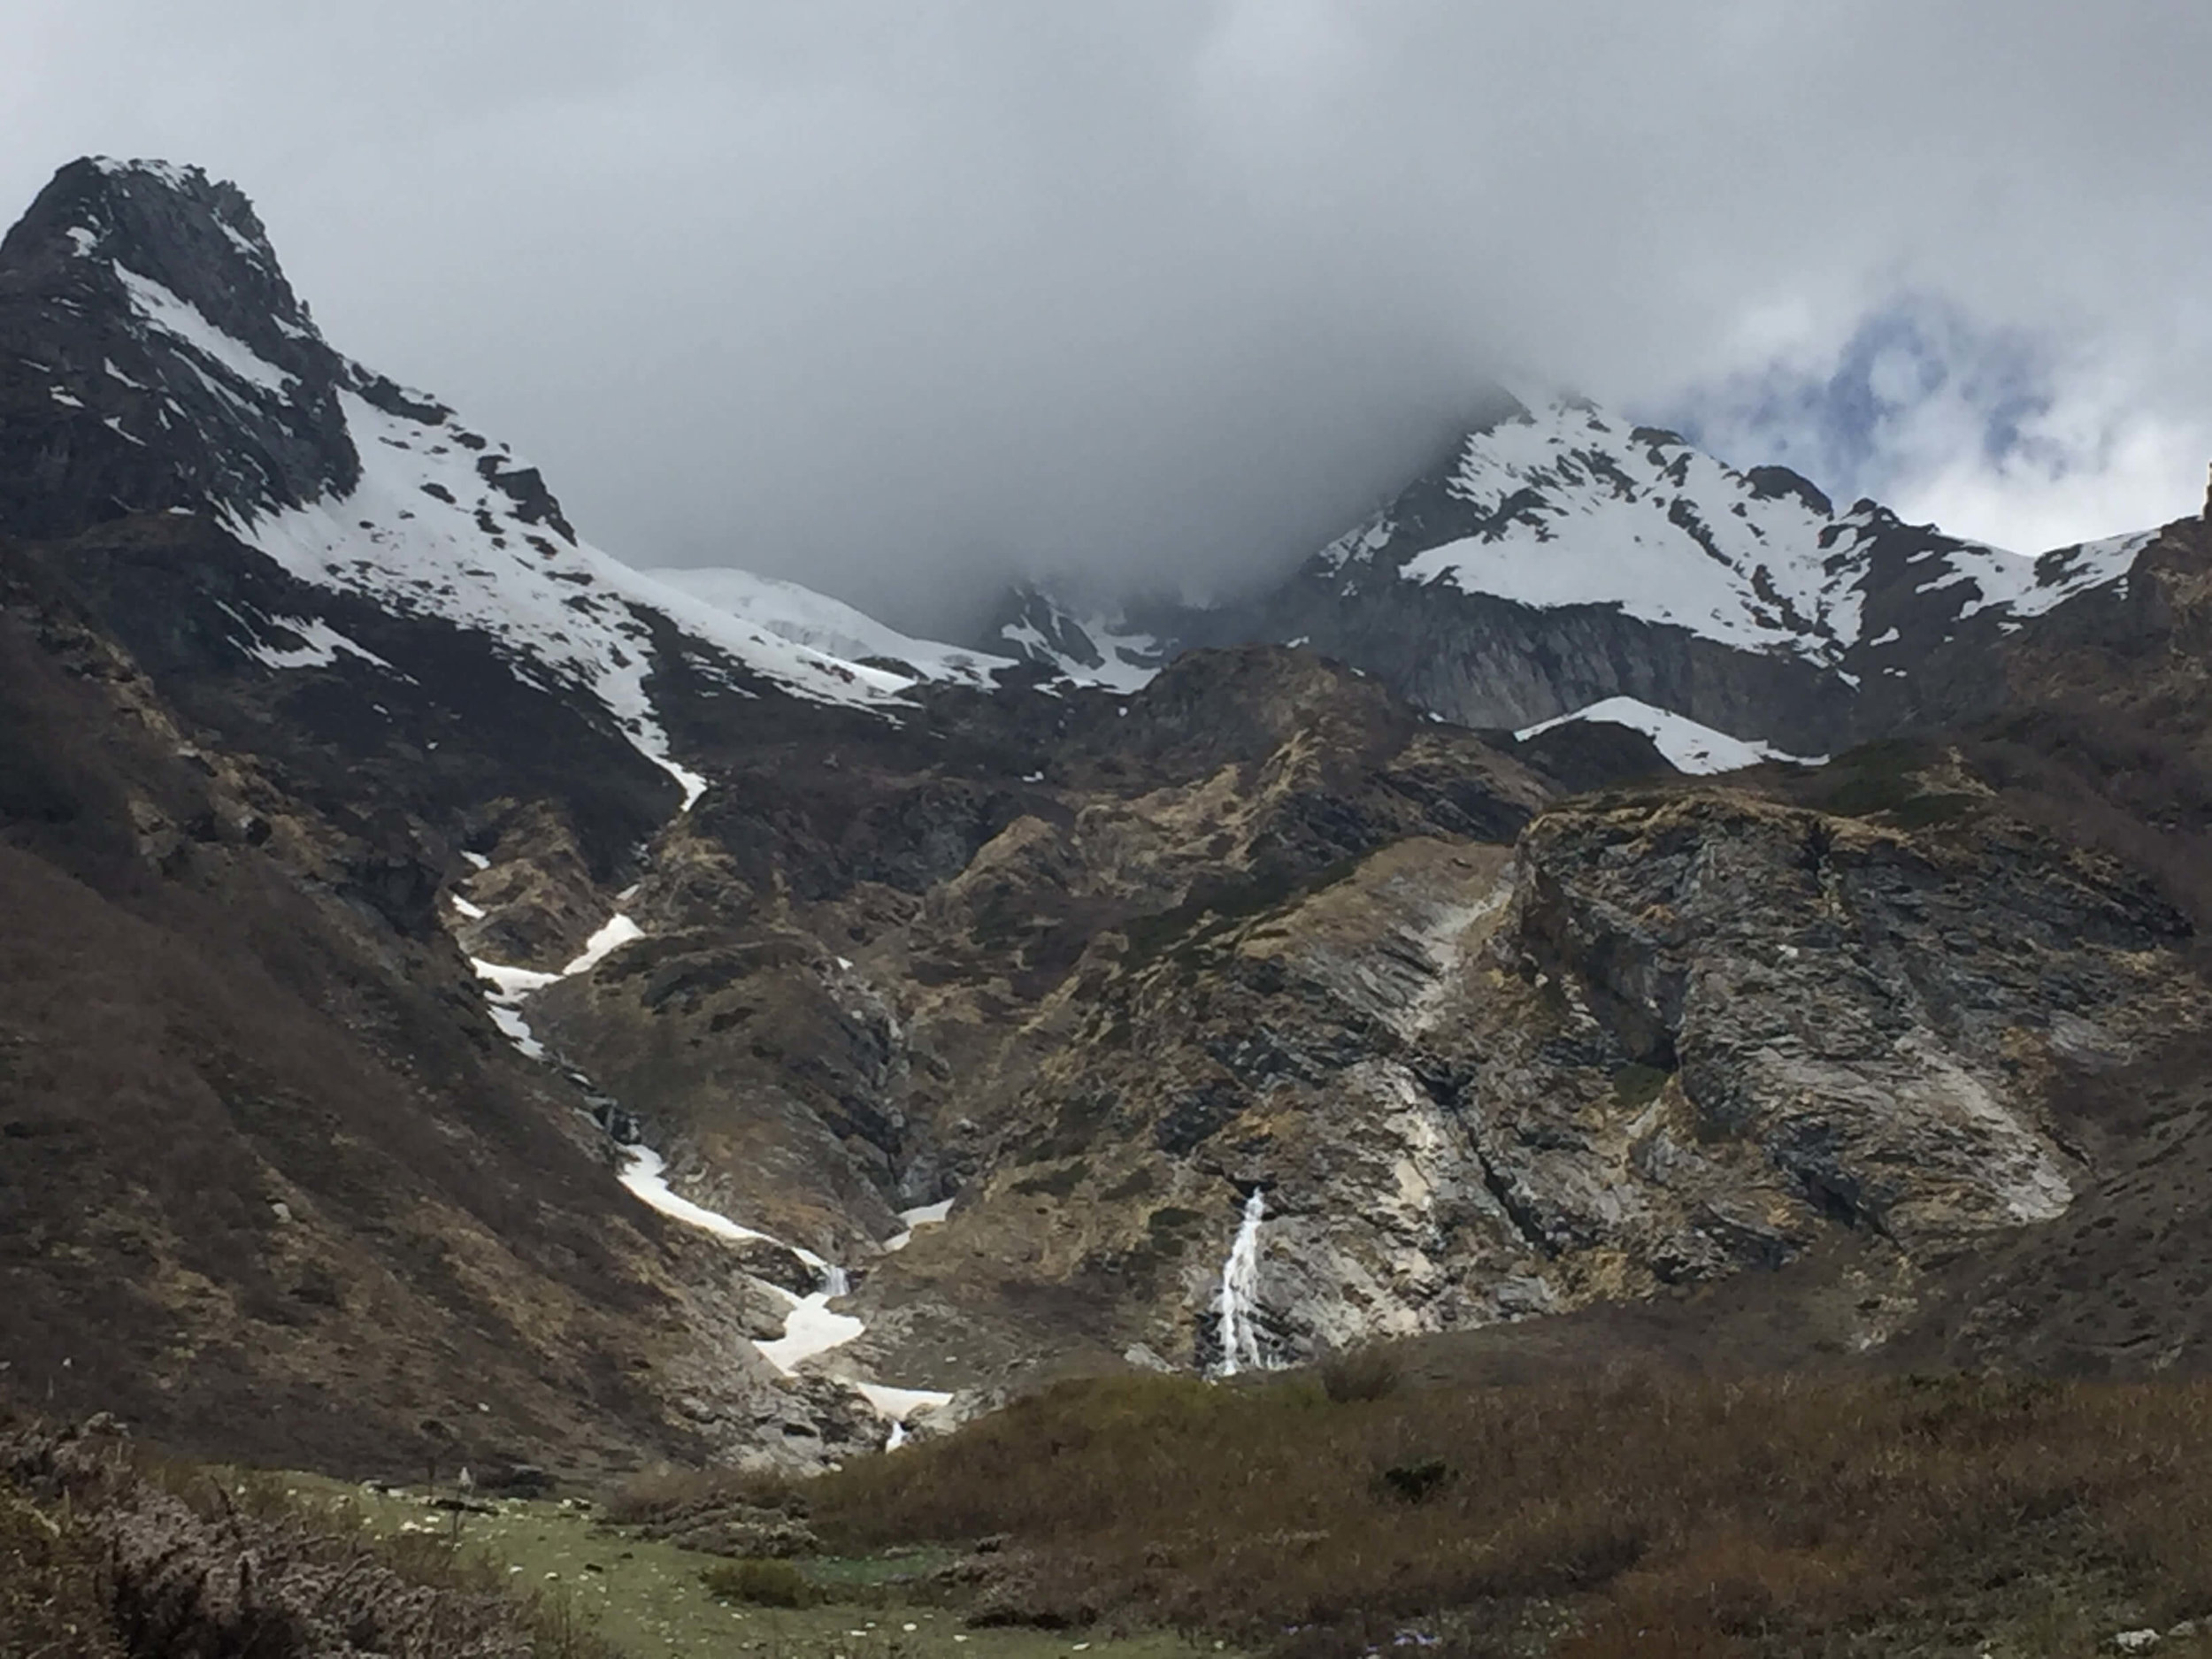 Glacier river in the mighty Himalaya mountain